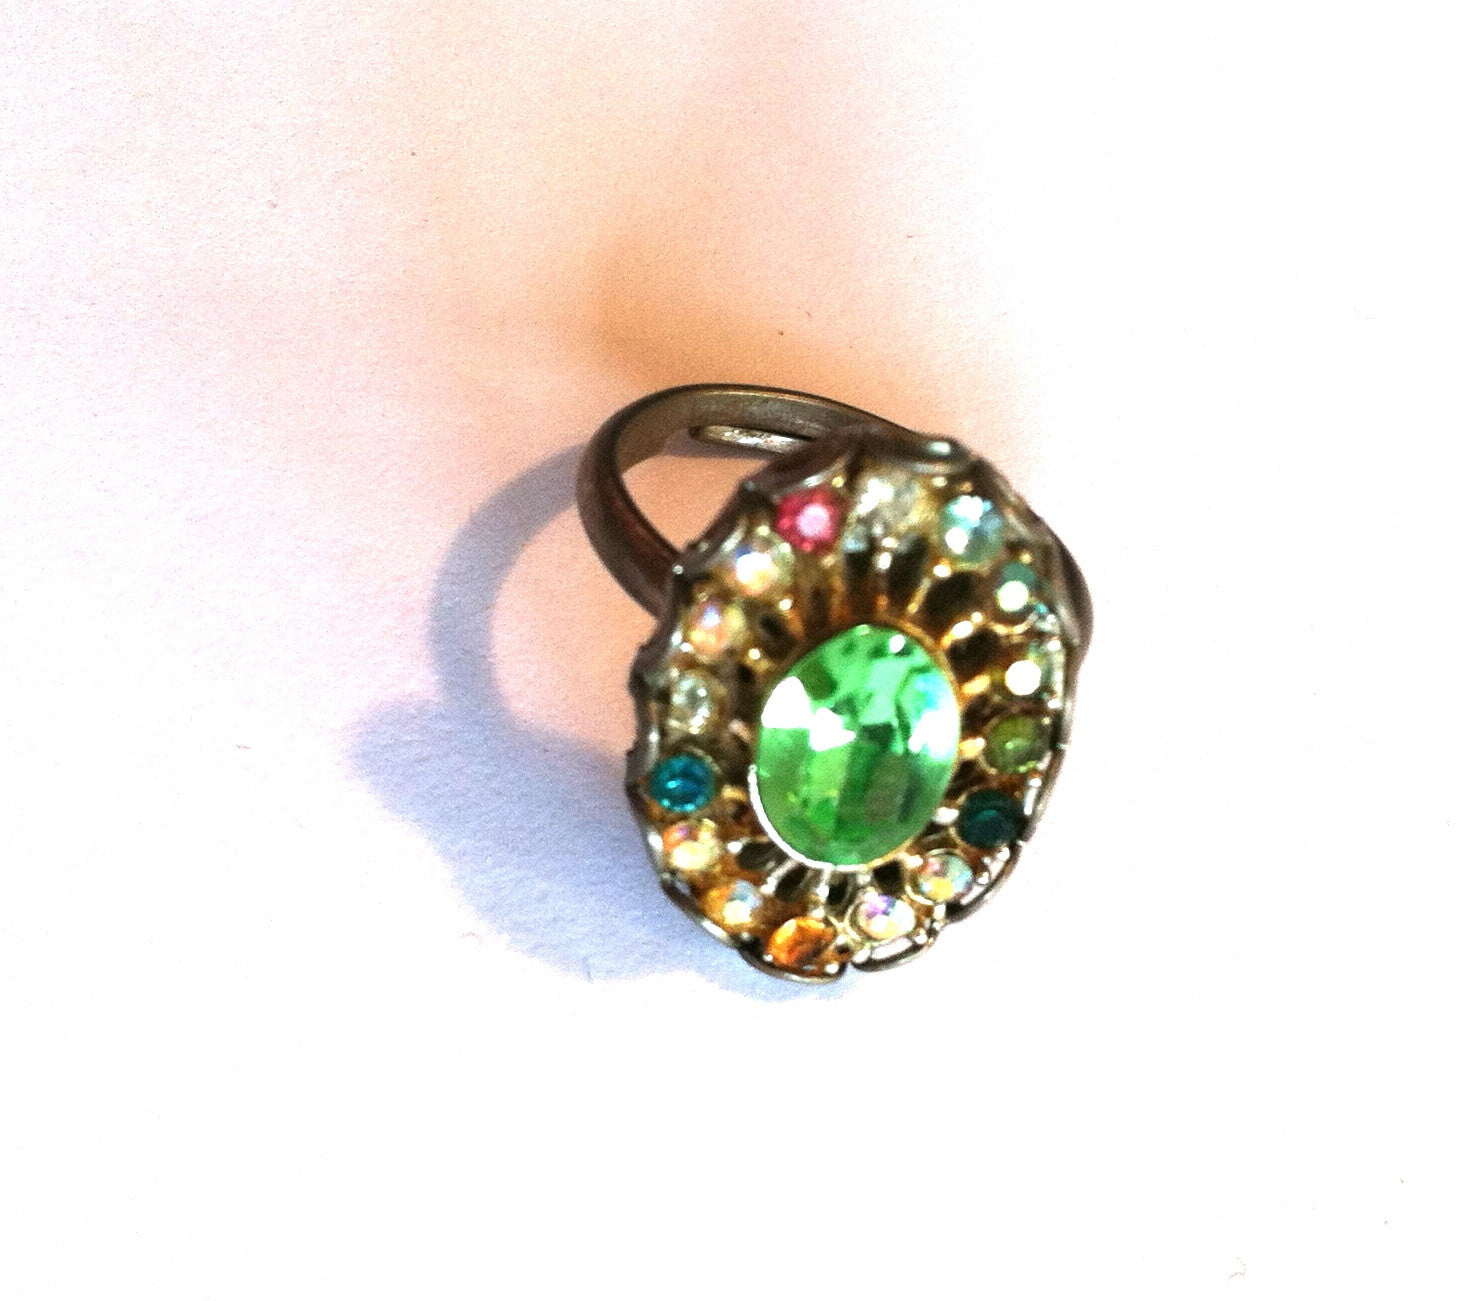 Citrine Green Beveled Glass Cocktail Ring w/ Pastel Rhinestones Adjustable circa 1950s